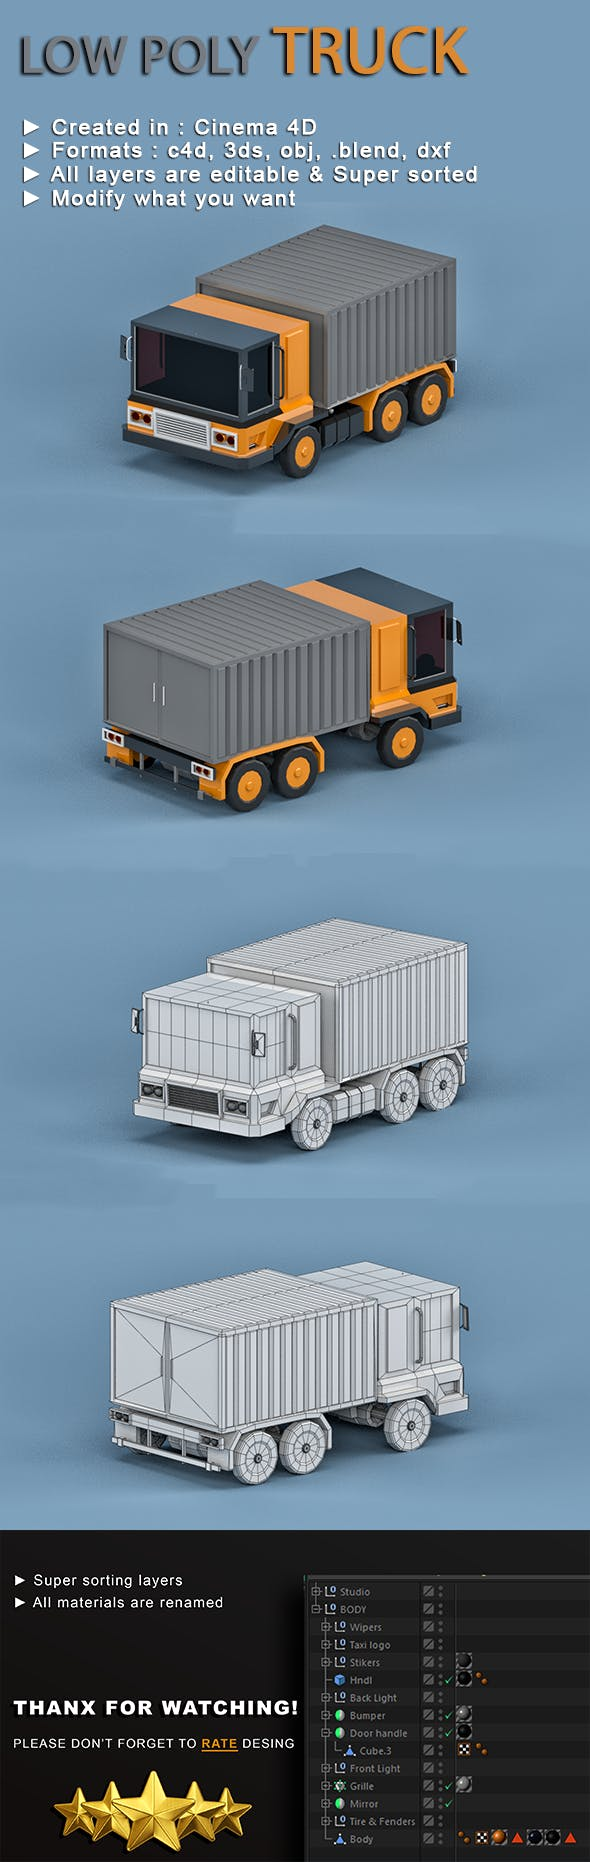 Low-poly Truck - 3DOcean Item for Sale